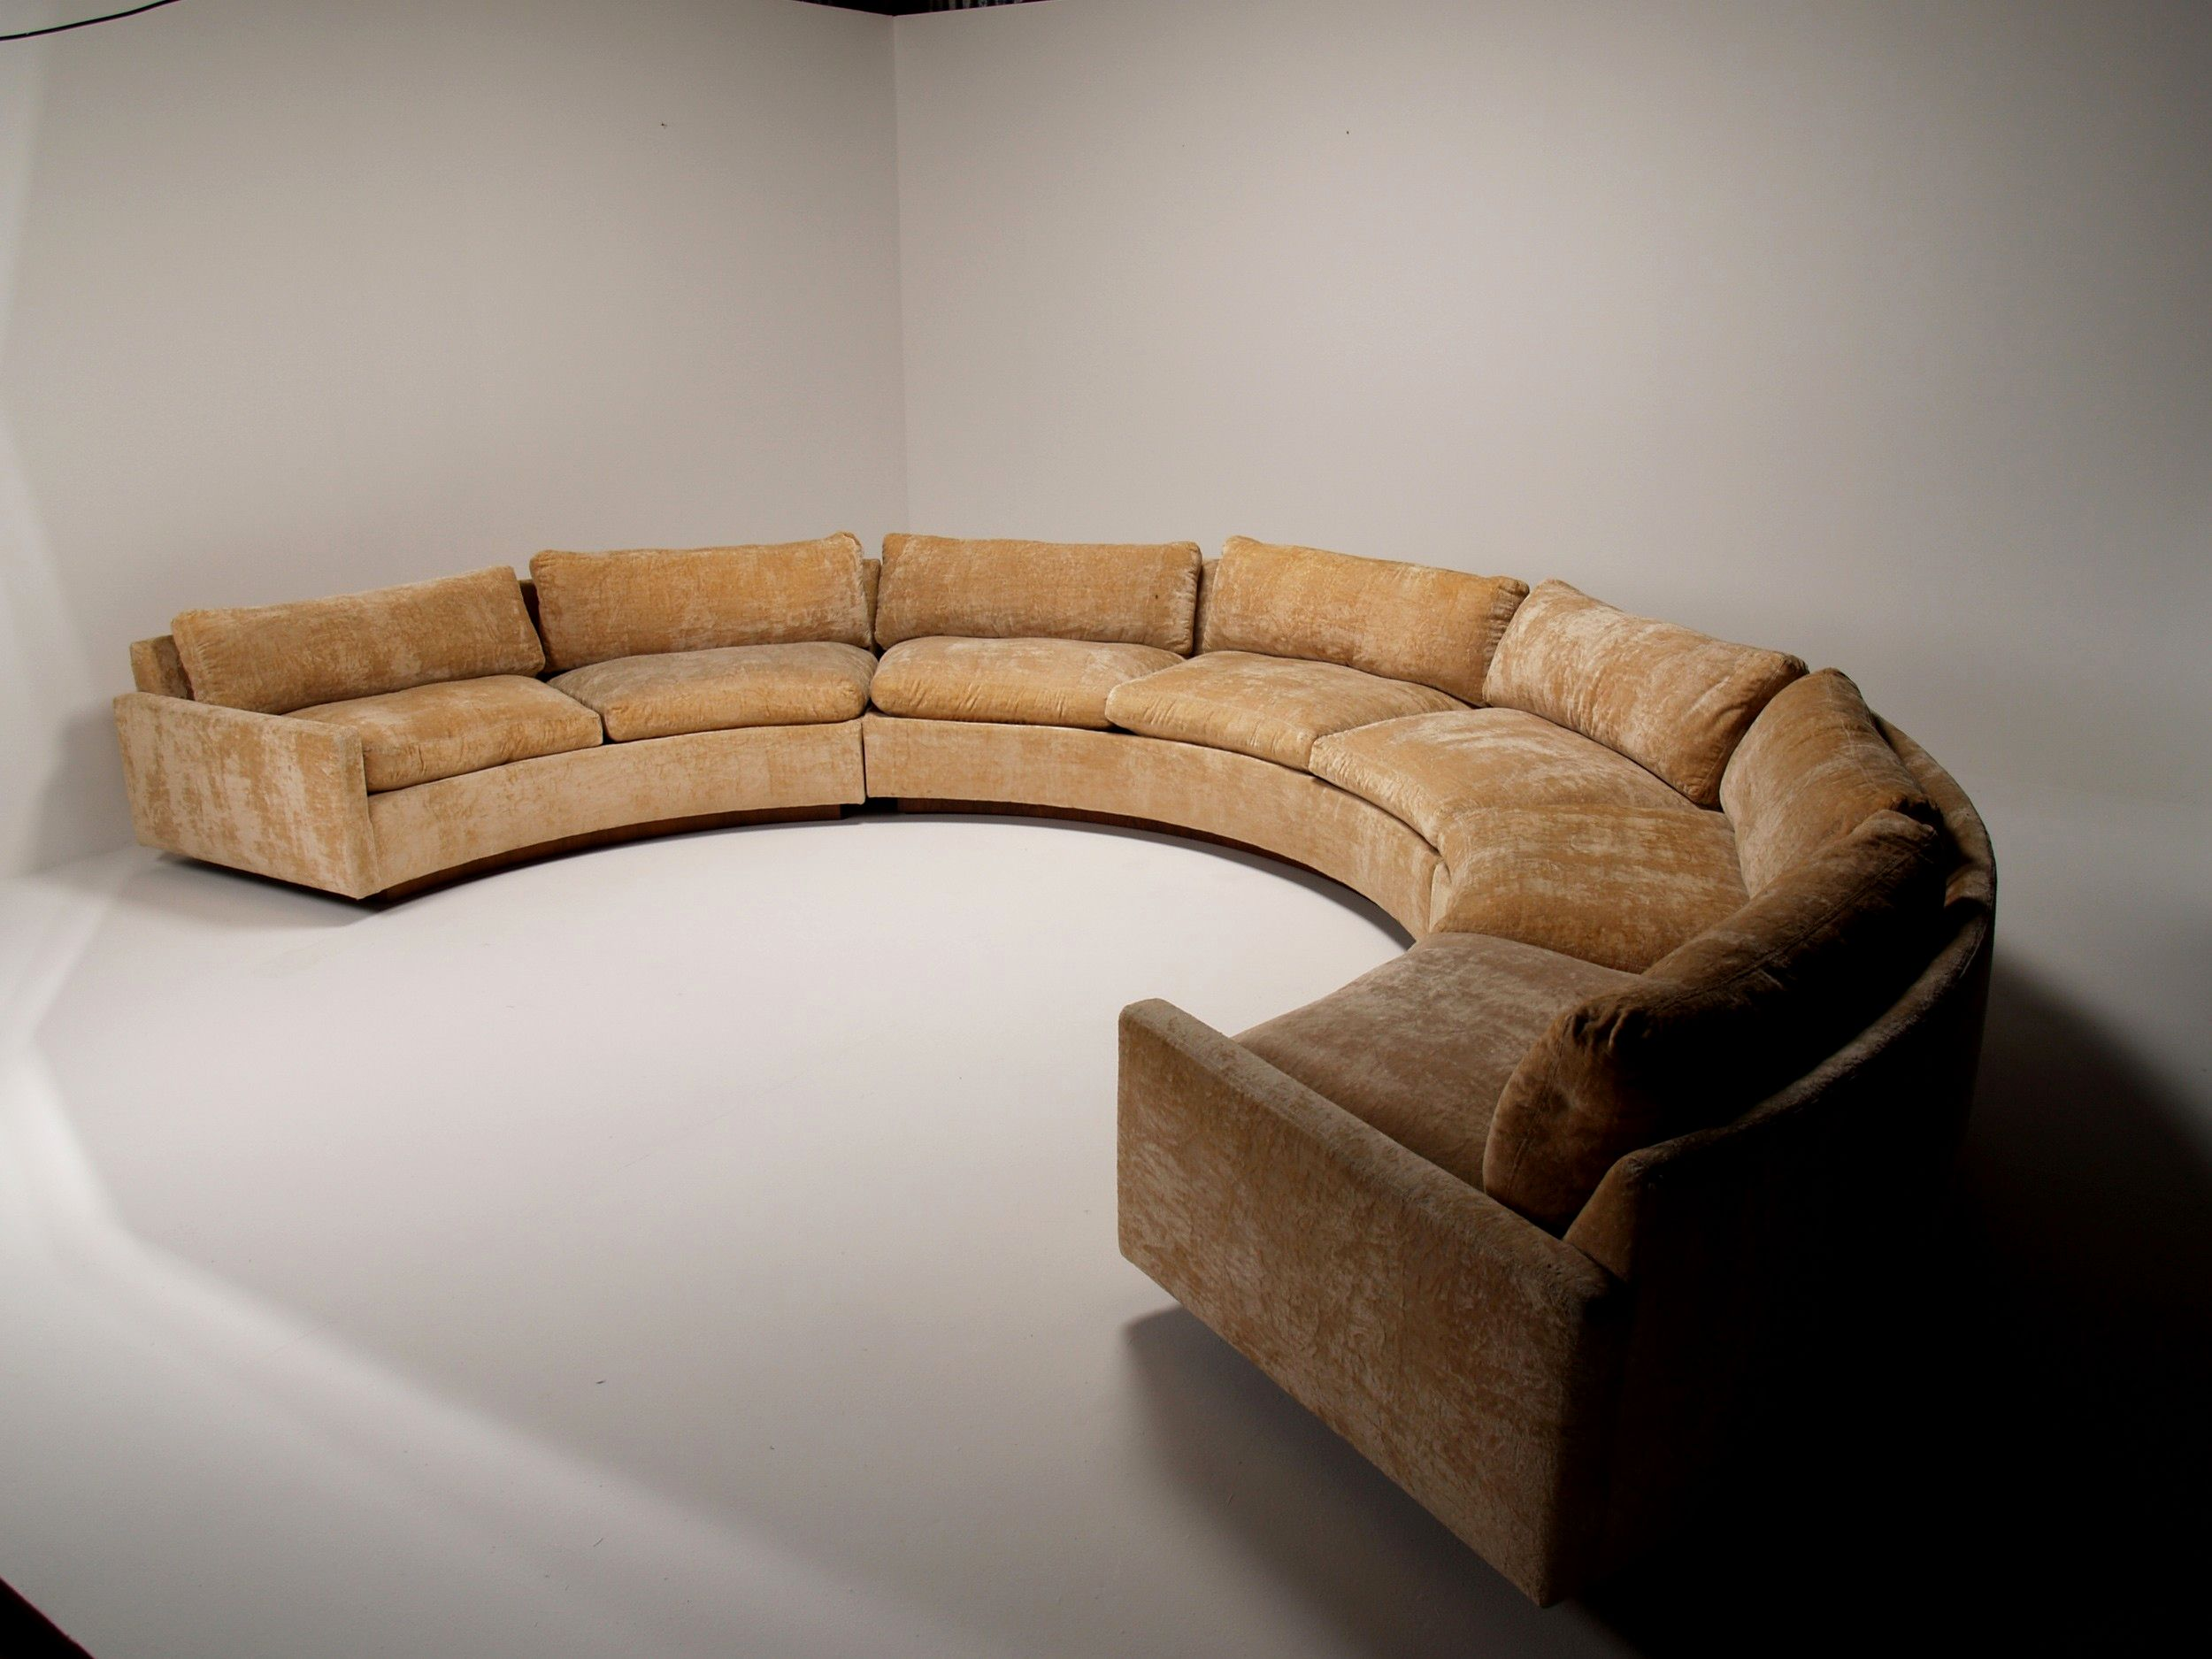 elegant large sectional sofas gallery-Sensational Large Sectional sofas Collection